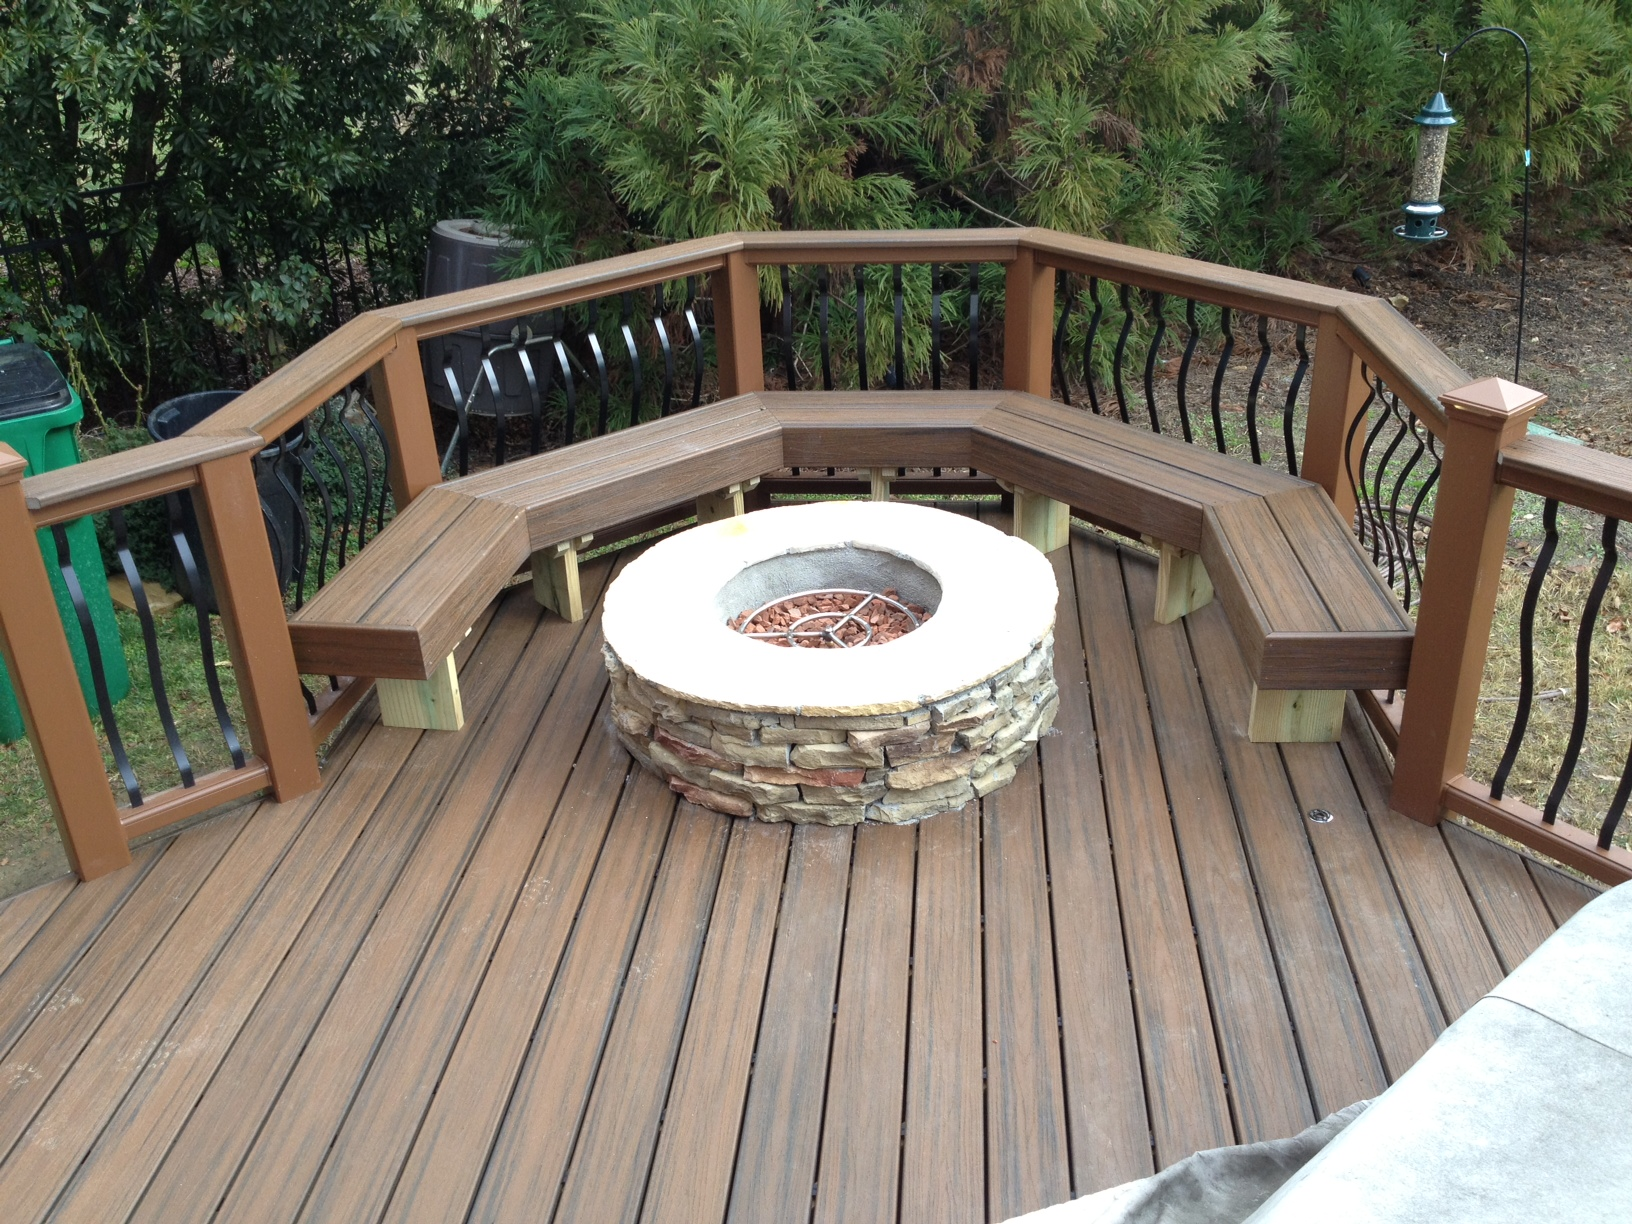 Deck designs archadeck of charlotte trex transcends deck and fire pit by archadeck of charlotte baanklon Images